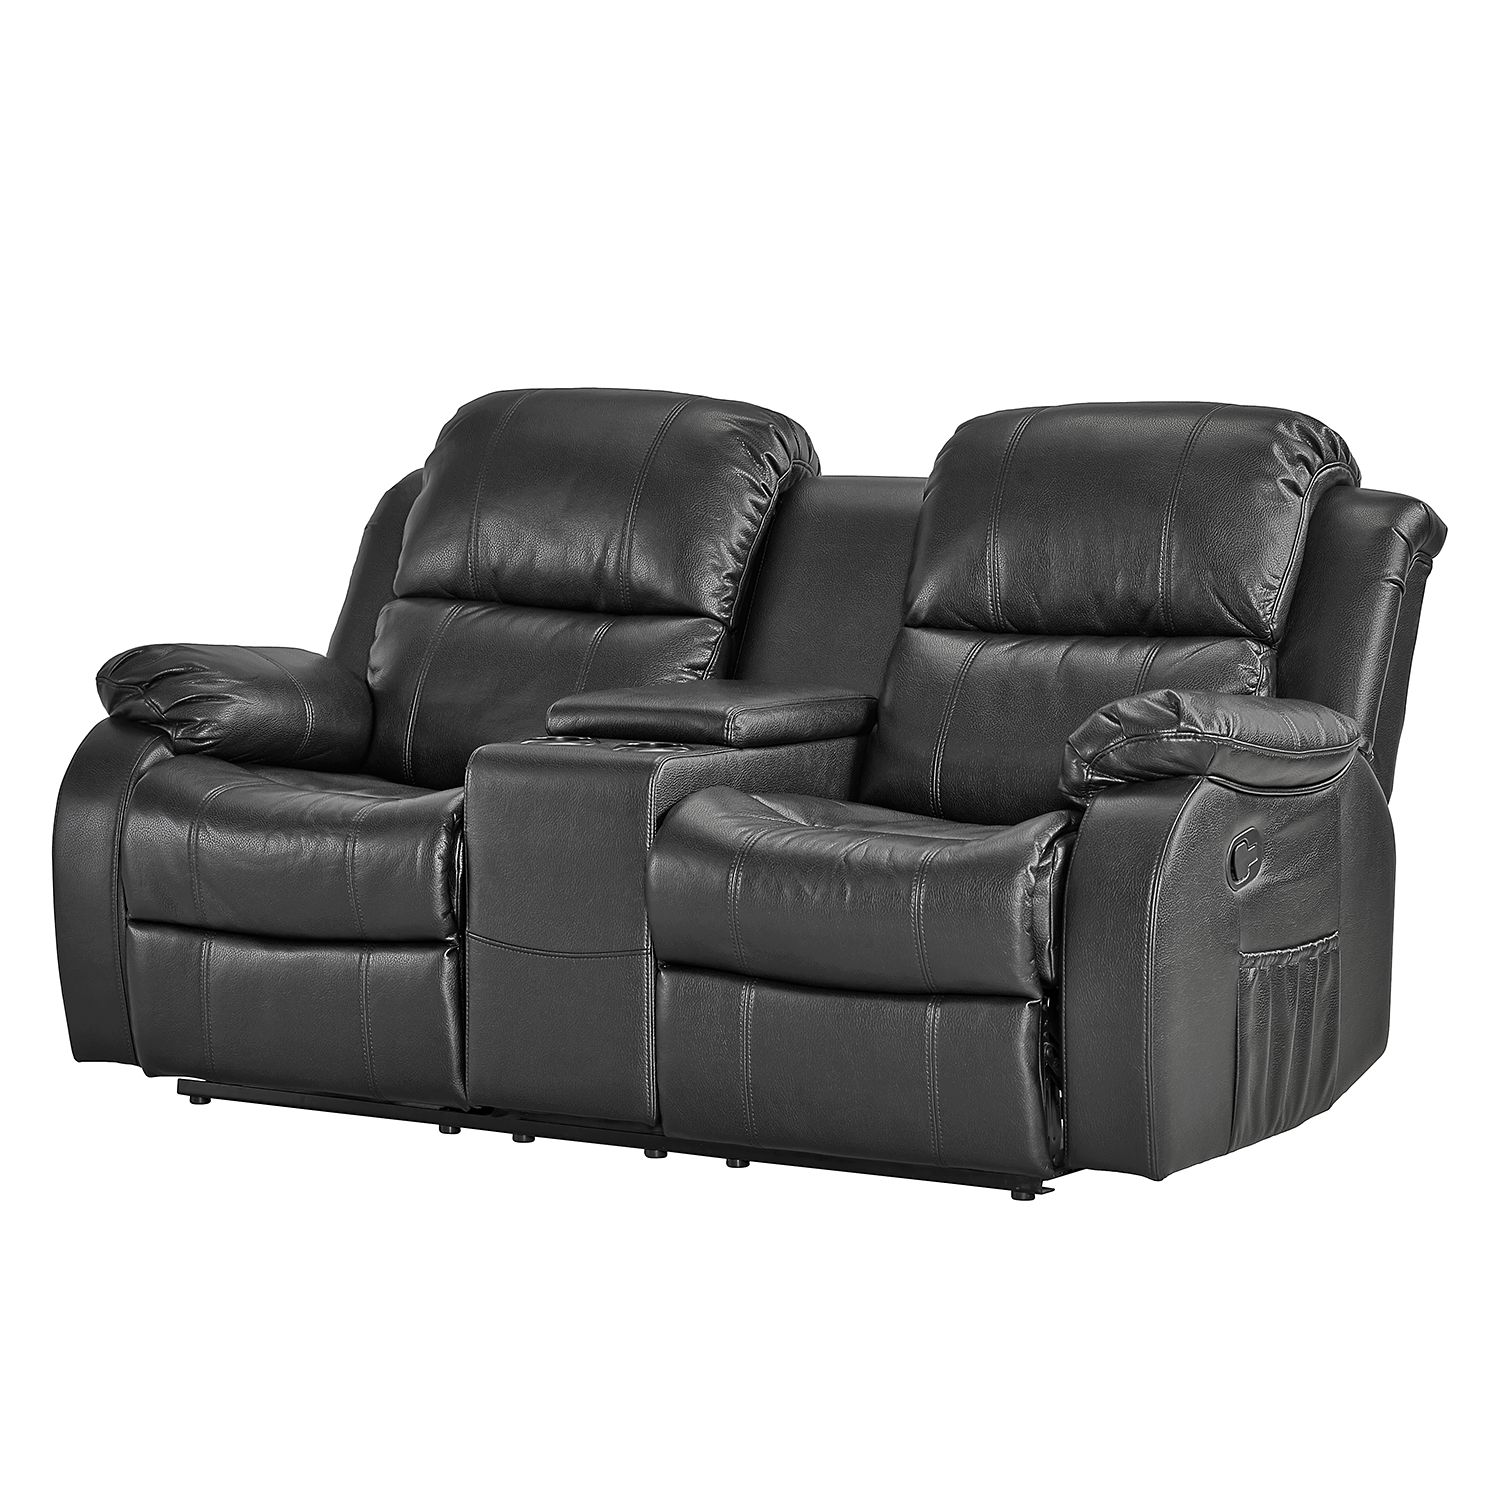 sofa mendis 2 sitzer kunstleder schwarz ebay. Black Bedroom Furniture Sets. Home Design Ideas